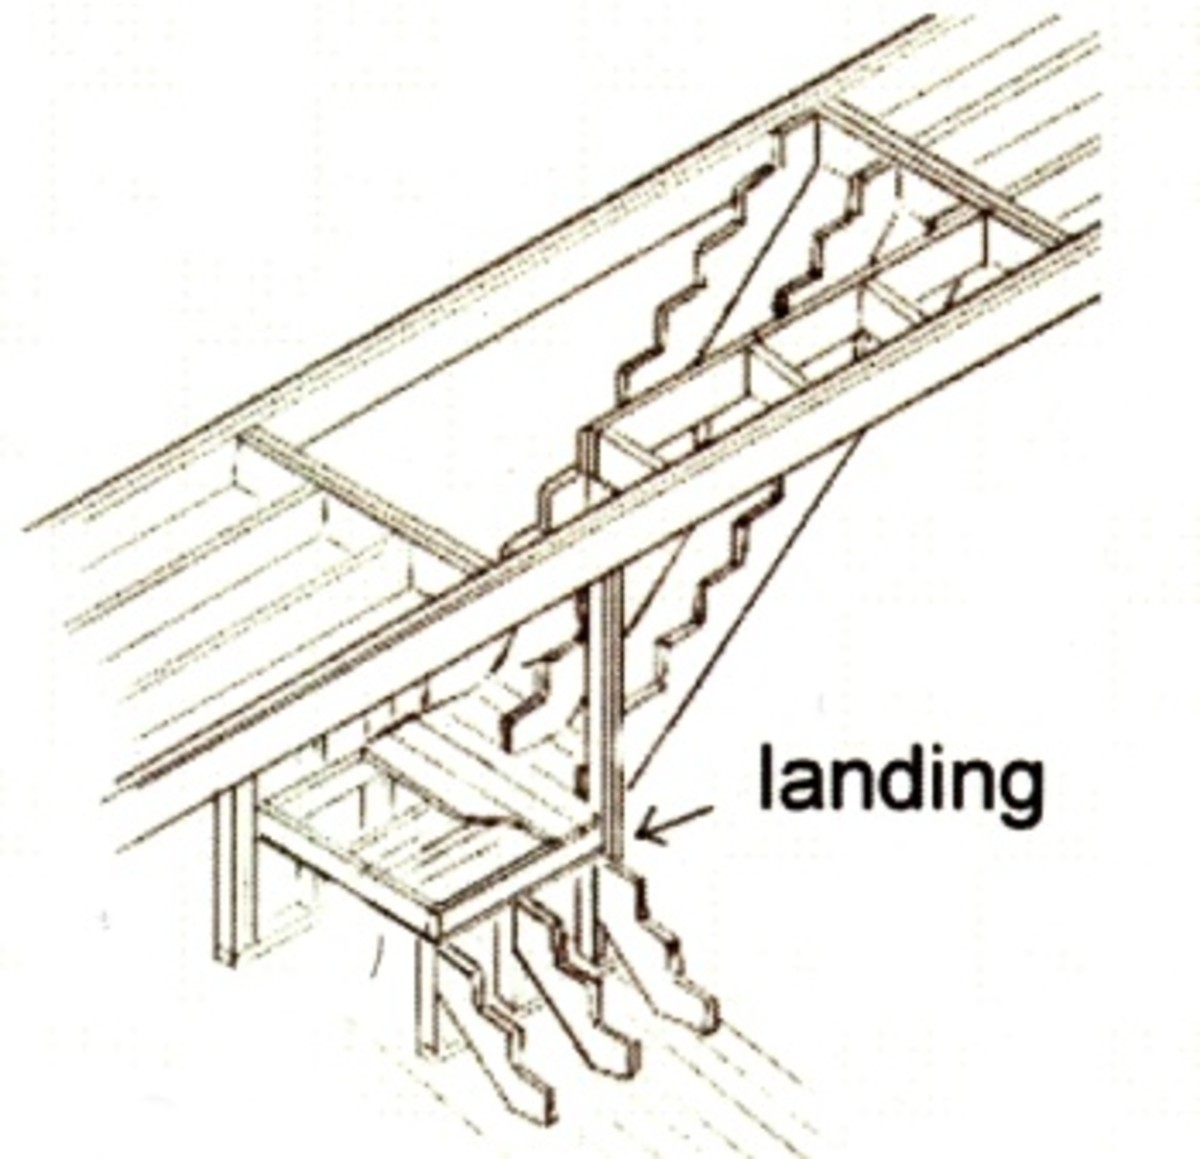 Stairs with landing